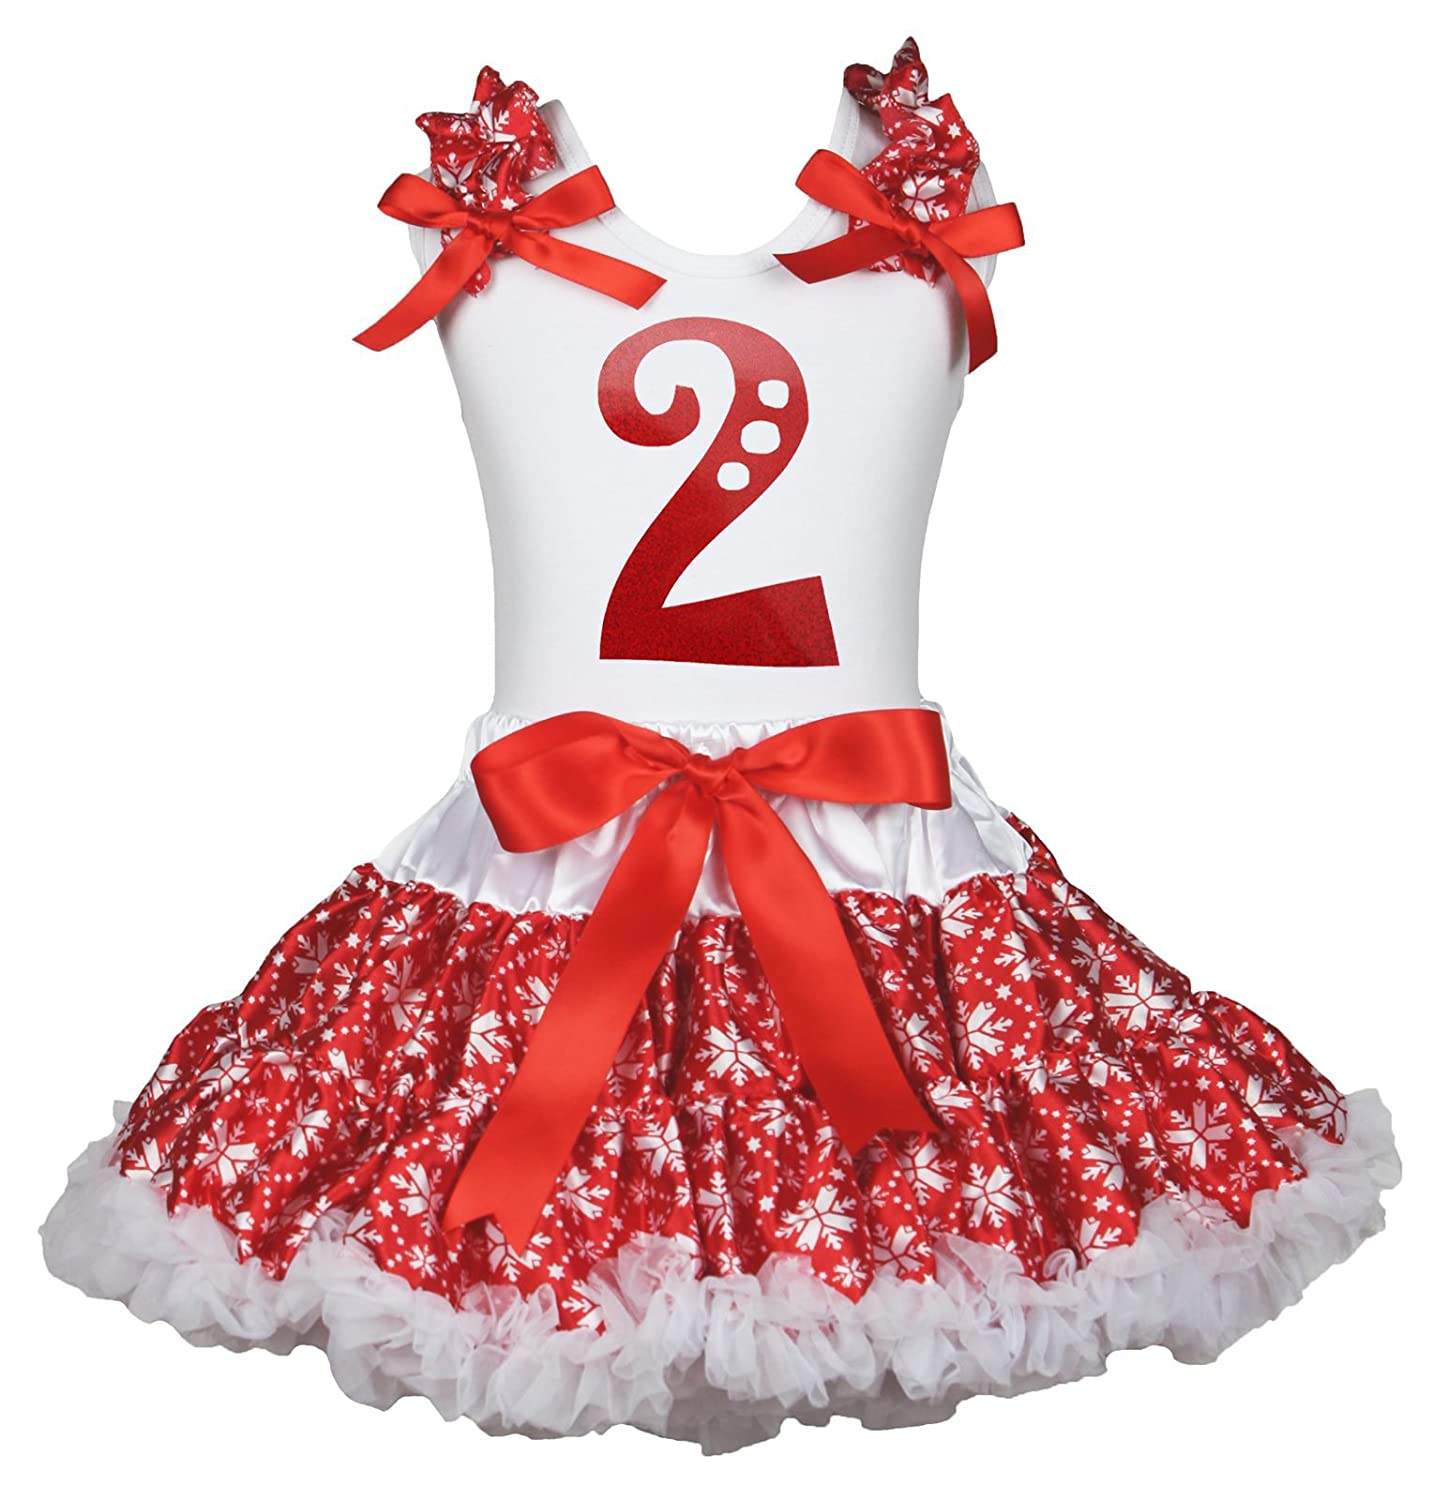 Christmas Dress 2nd Paint White Cotton Shirt Red Snowflake Skirt Outfit Set 1-8y